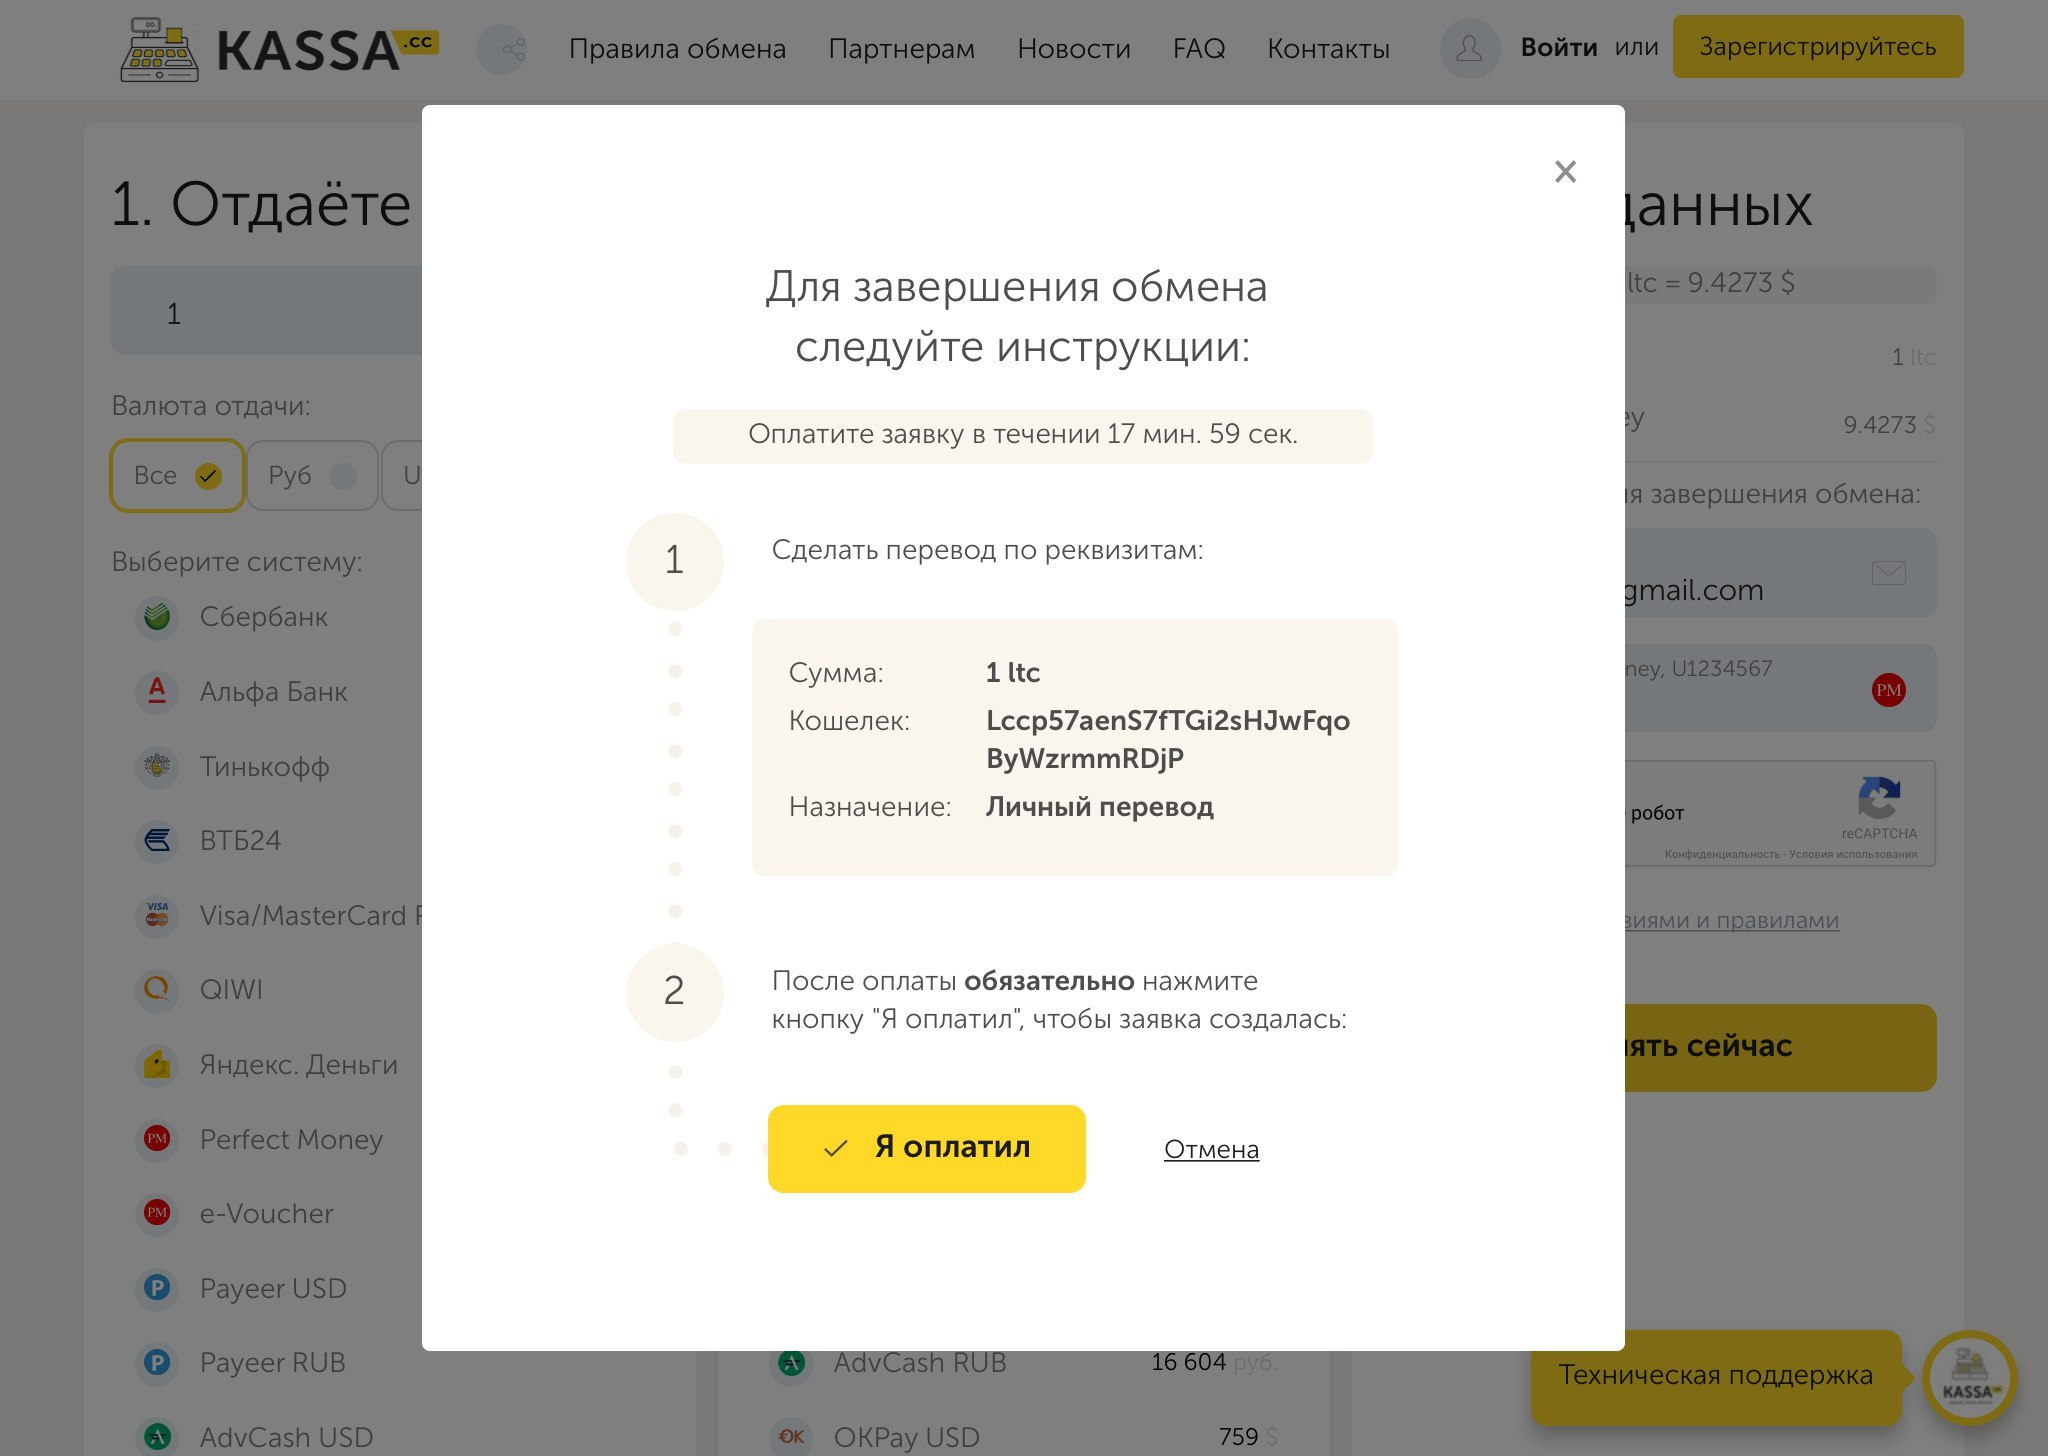 Kassa.cc is a single currency exchange. Exchange Litecoin for Perfect Money USD